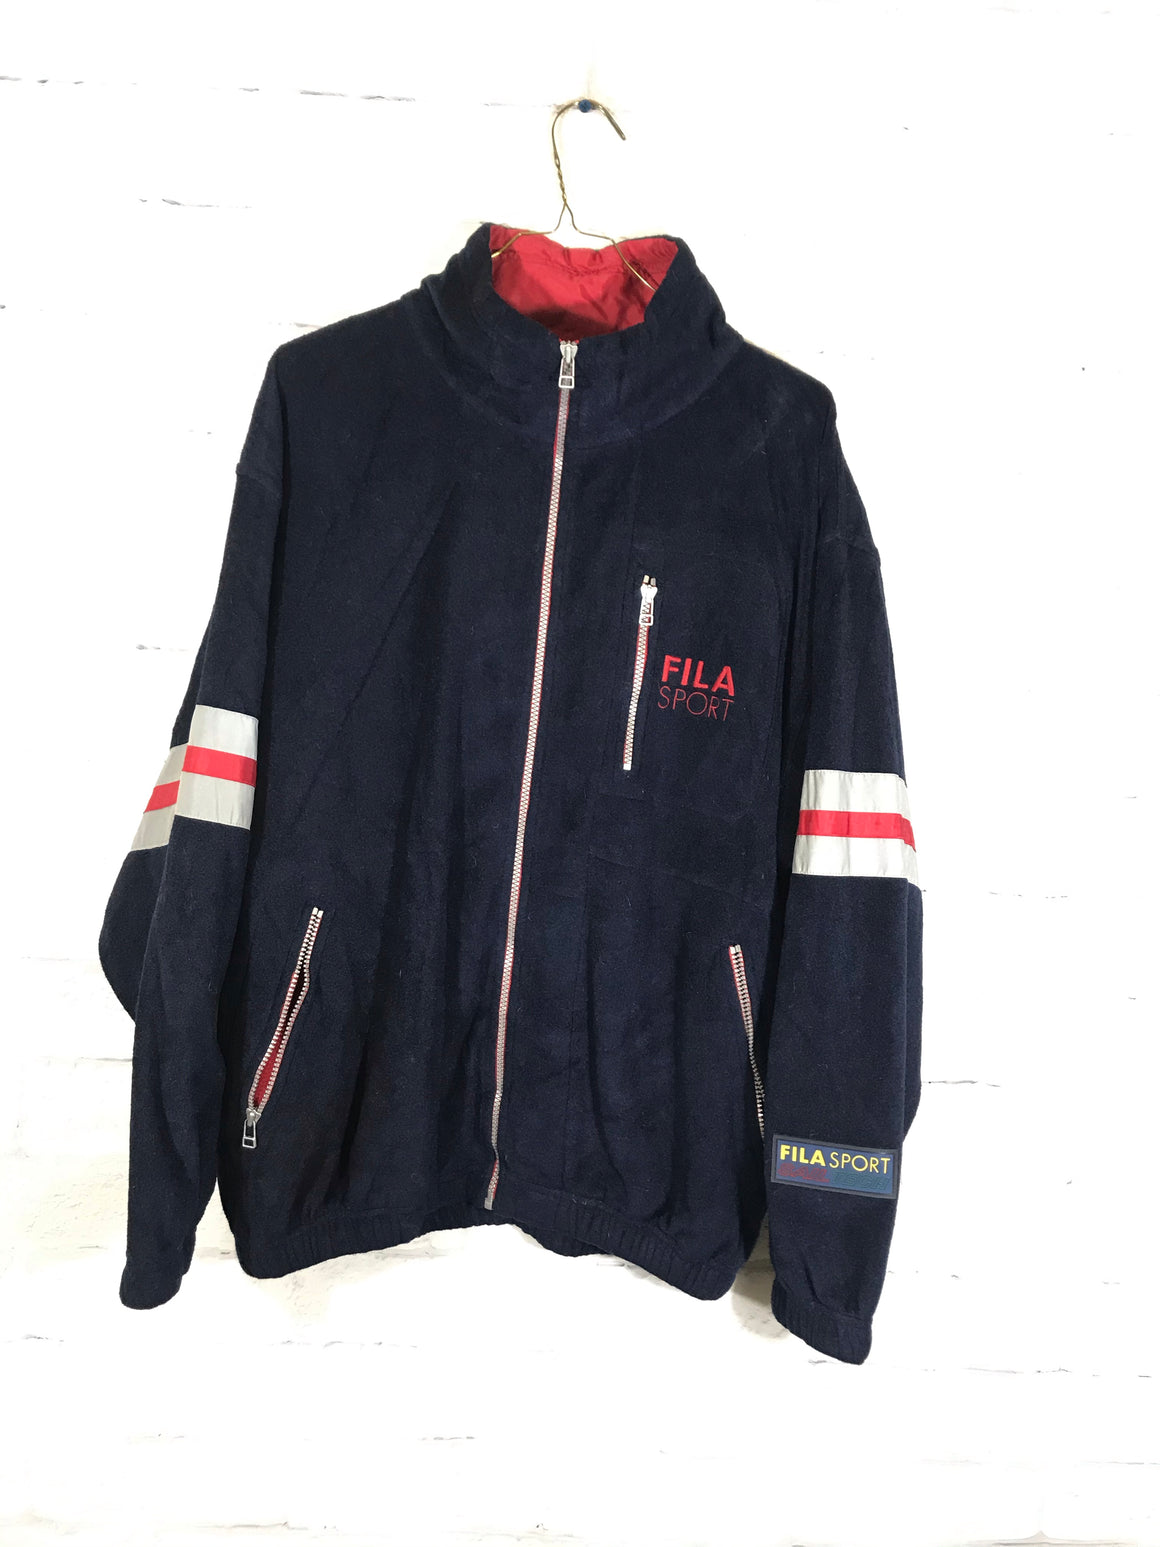 Fila Sail tech fullzip track jacket SZ mens medium